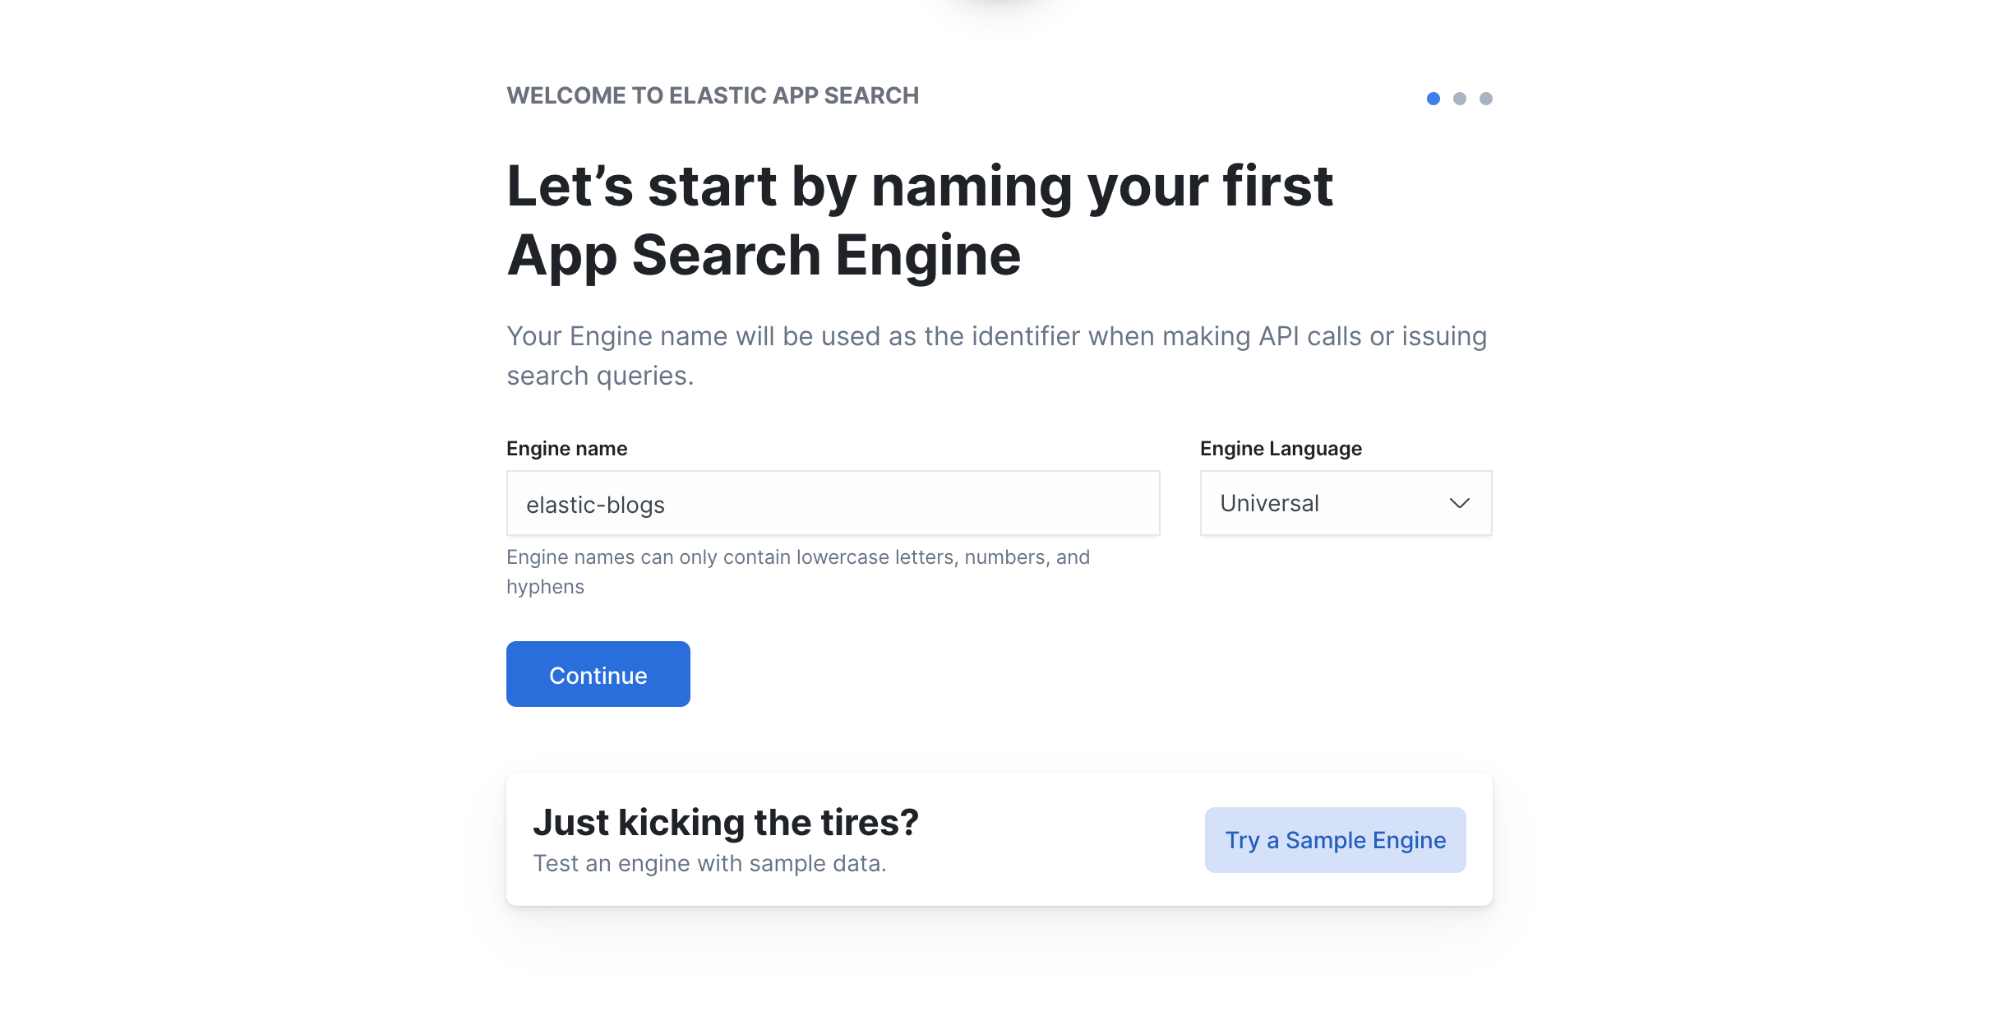 Create your Elastic App Search engine